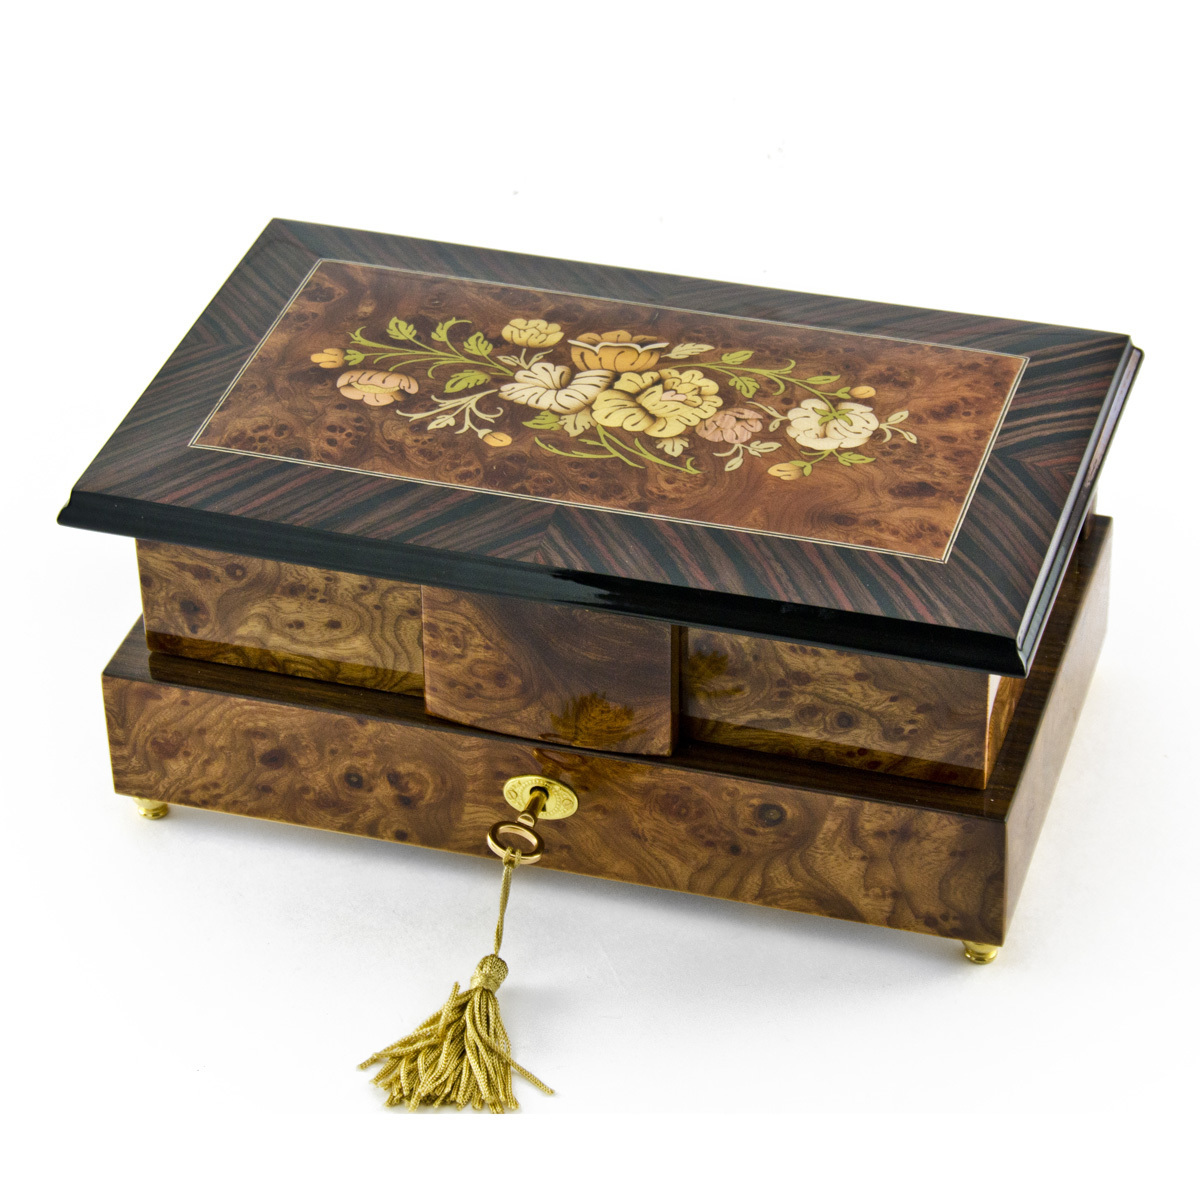 Grand 18 Note Double Level Musical Jewelry Box with Exquisite Floral Inlay